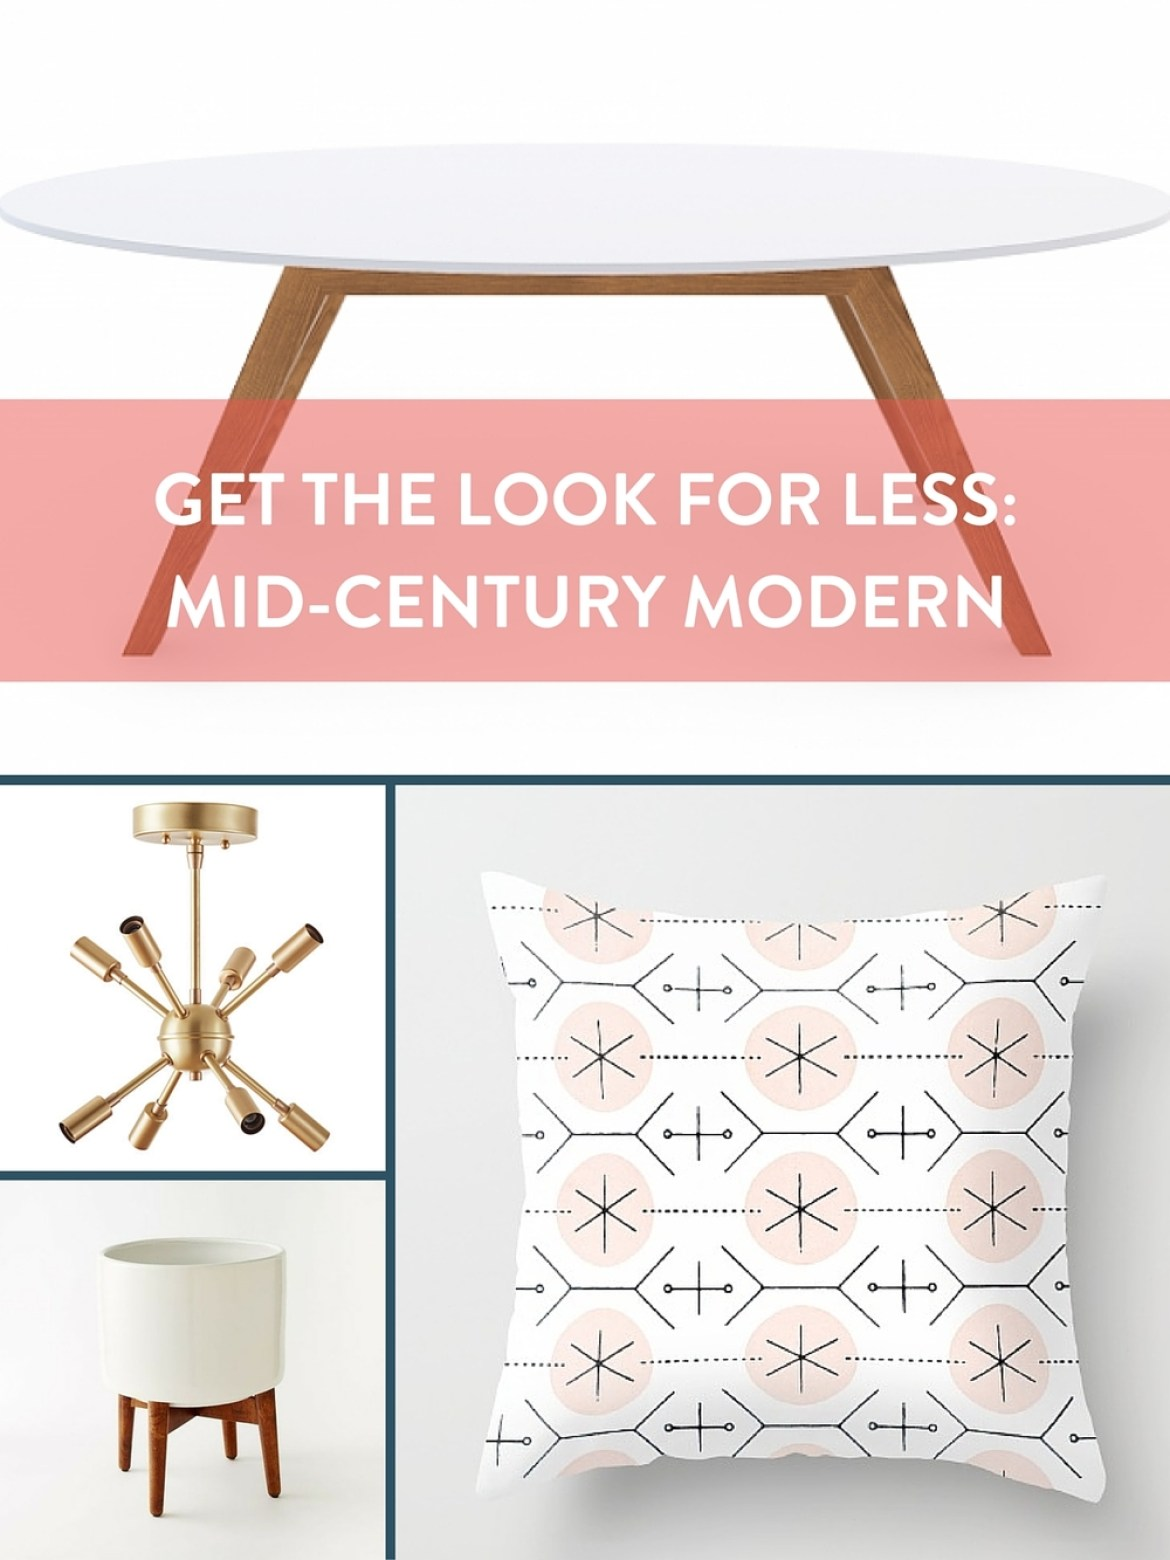 Get the Look for Less: Mid-Century Modern